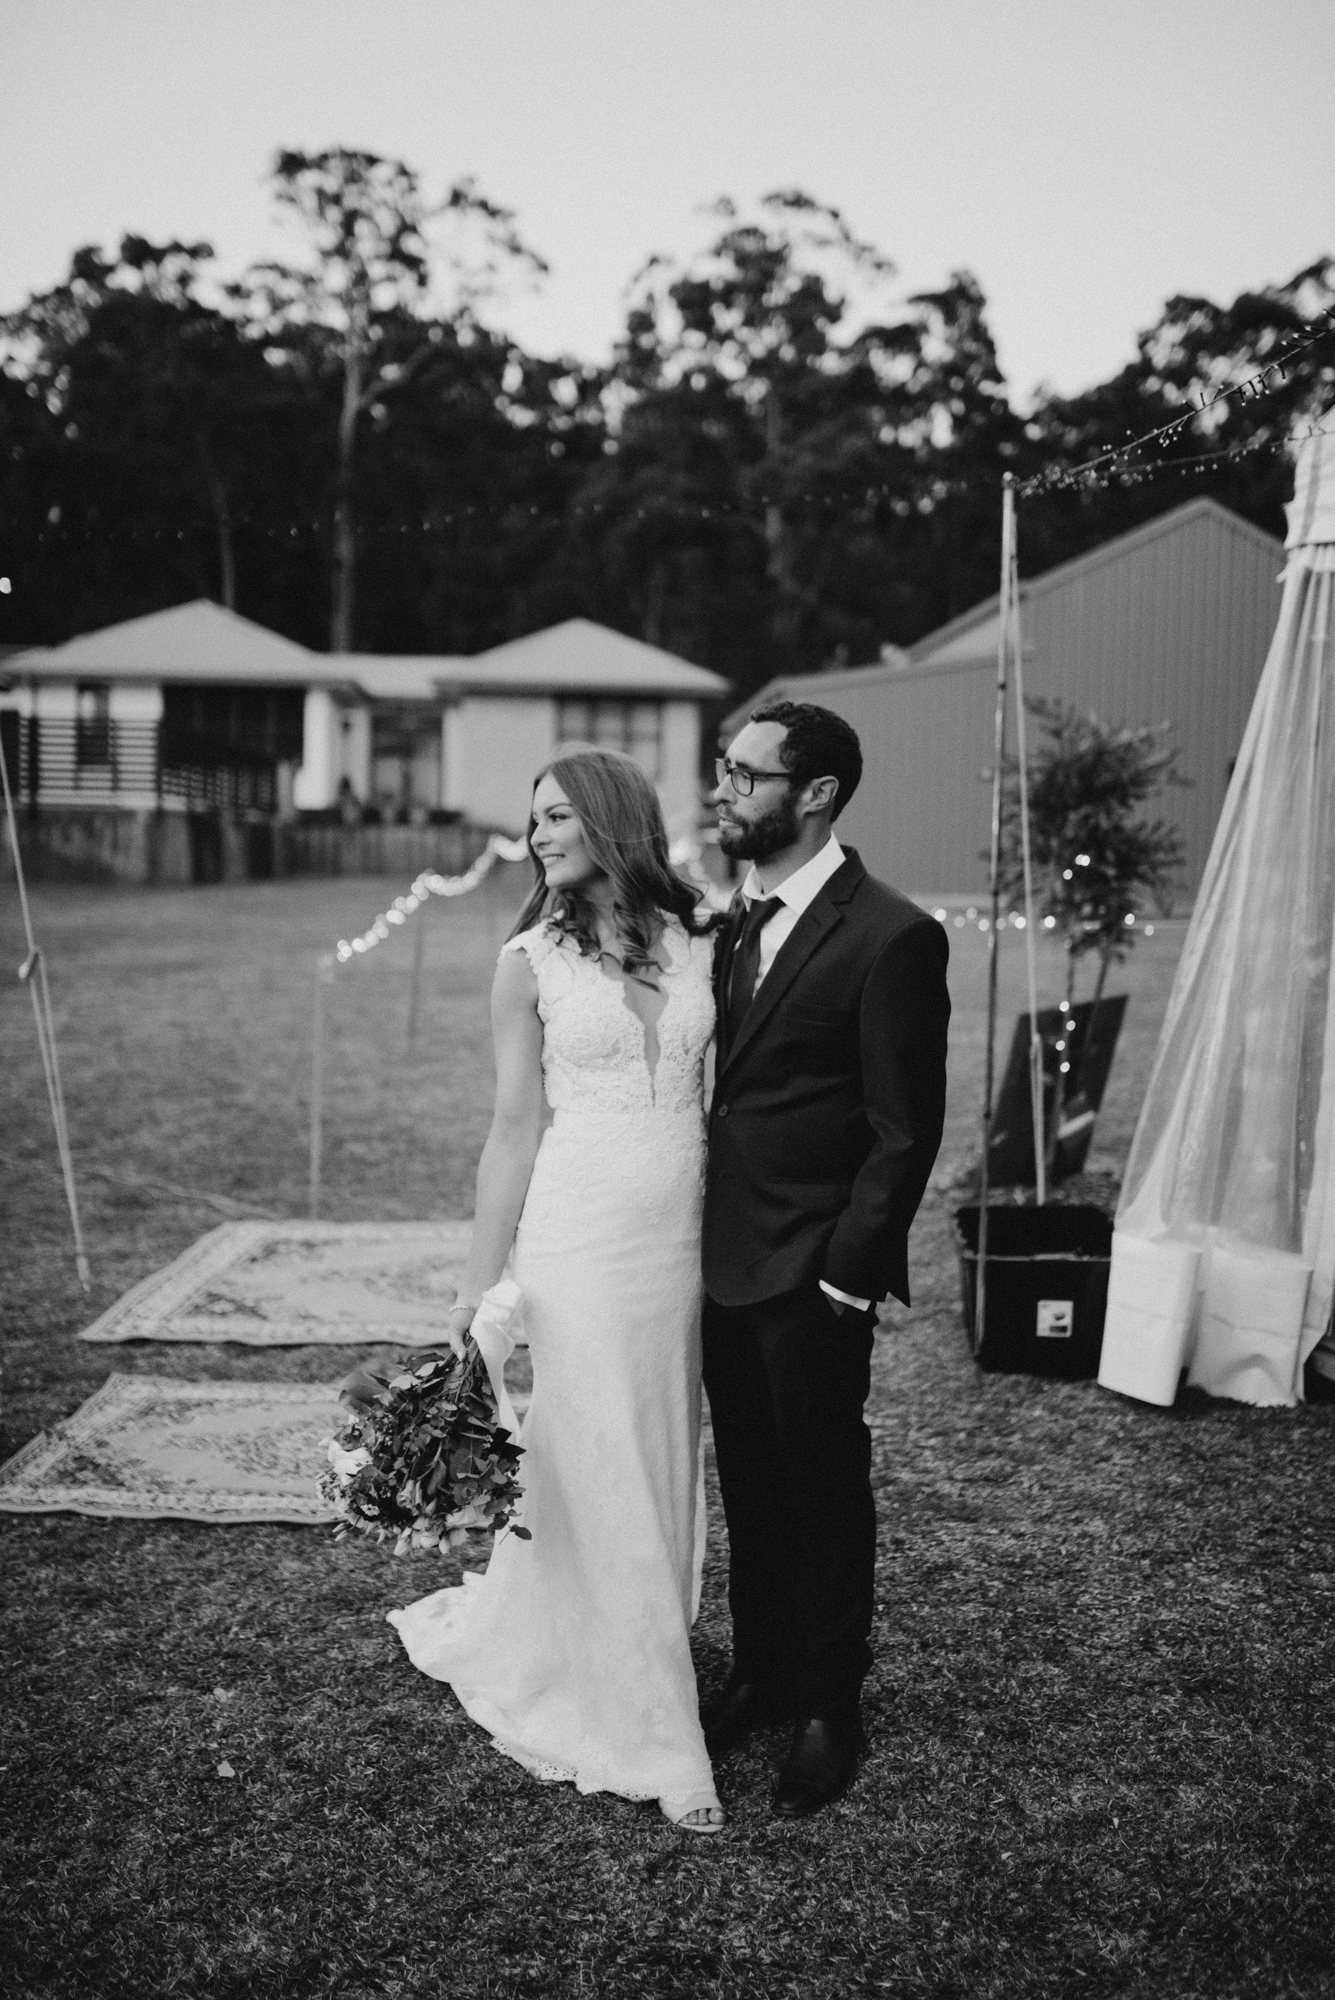 kelsie+chris-newcastle-45.jpg